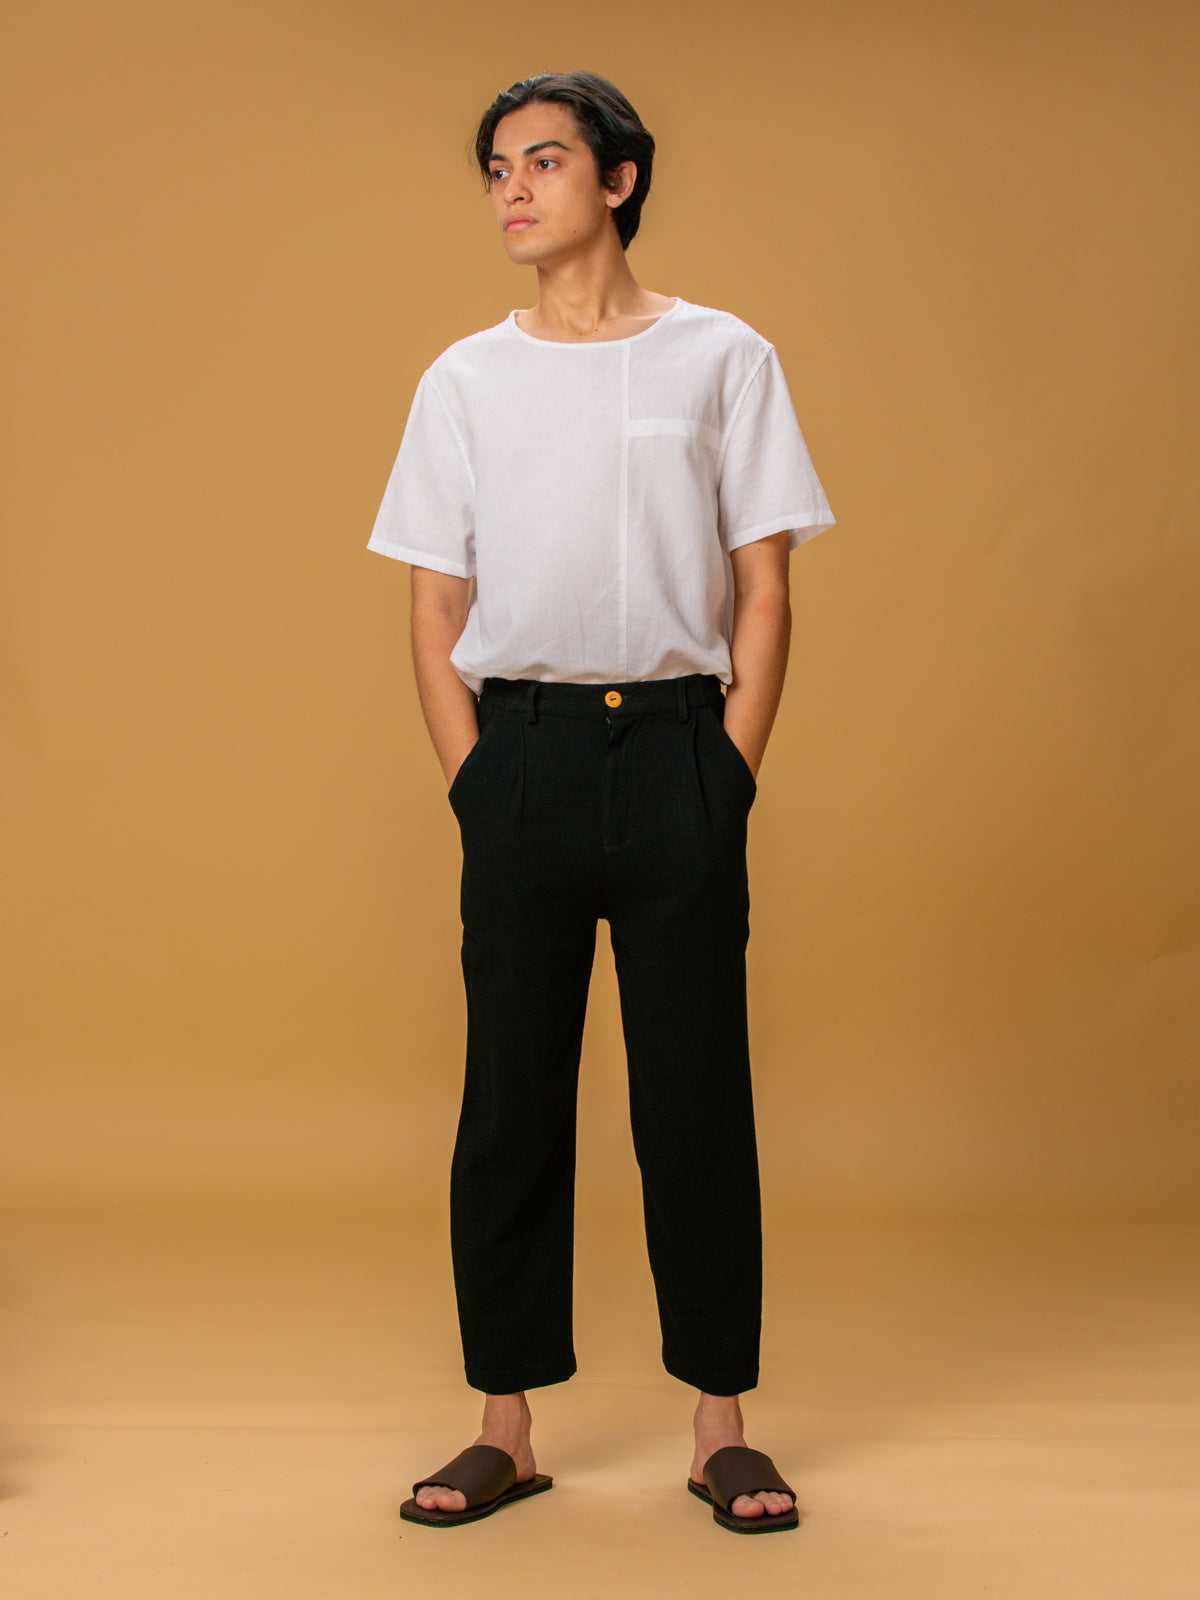 Unisex: Desir Tapered Pants (Black)